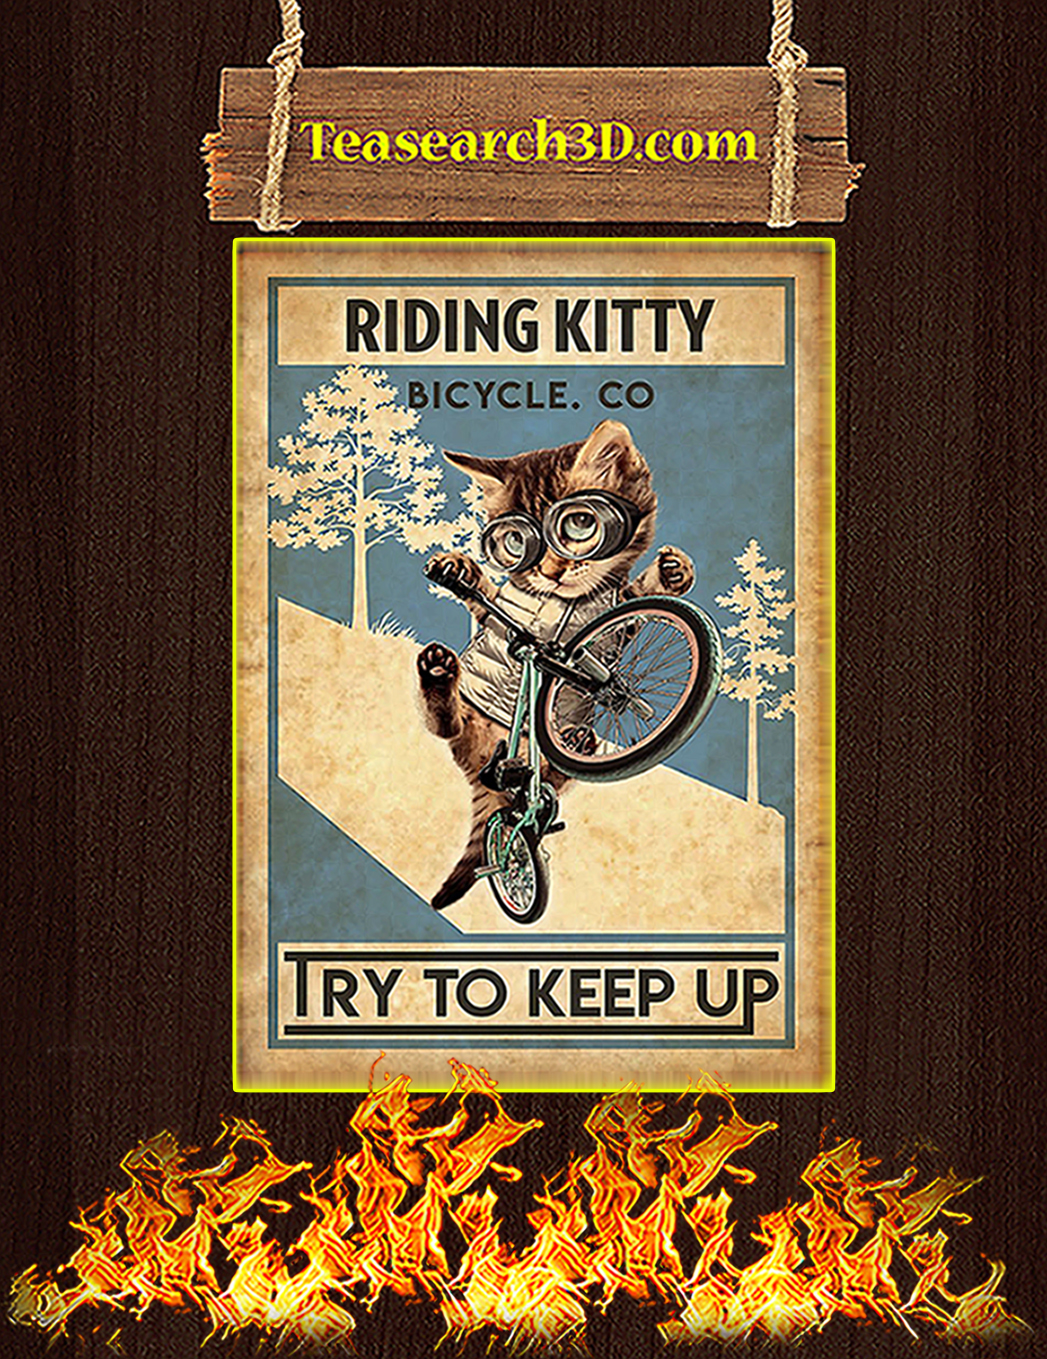 Cat riding kitty bicycle co try to keep up poster A1